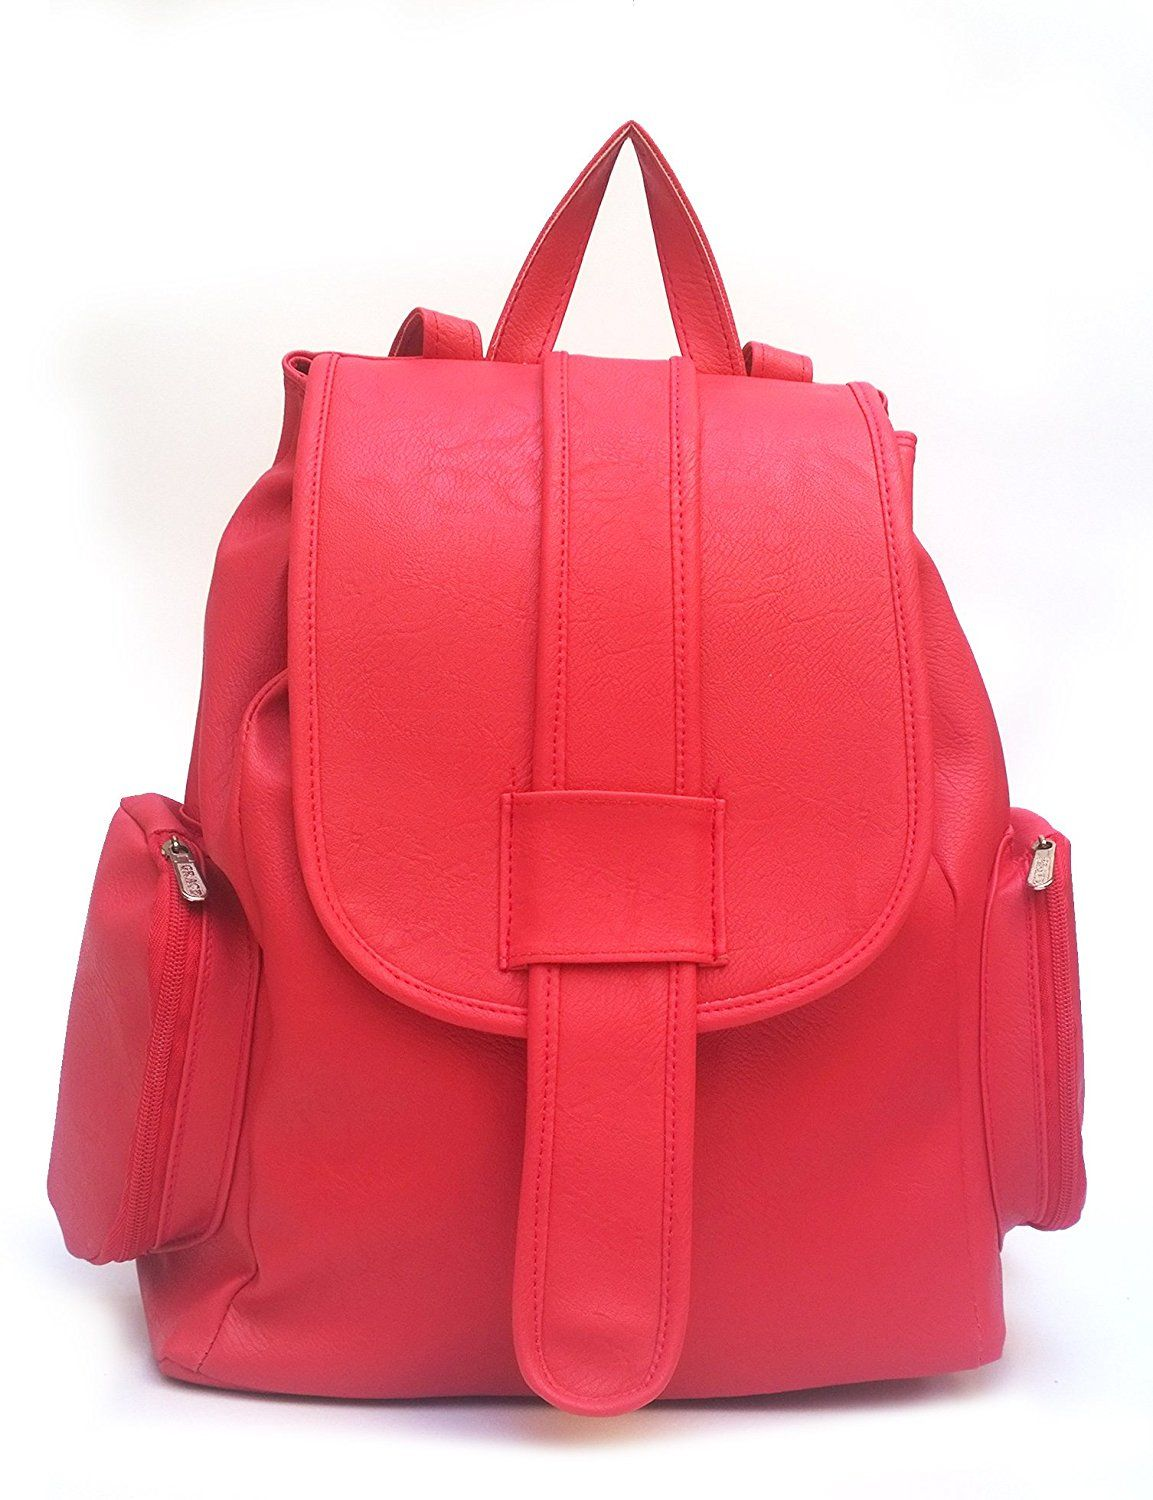 3d3220f782d5 Vintage Women s Backpack Handbag (Red